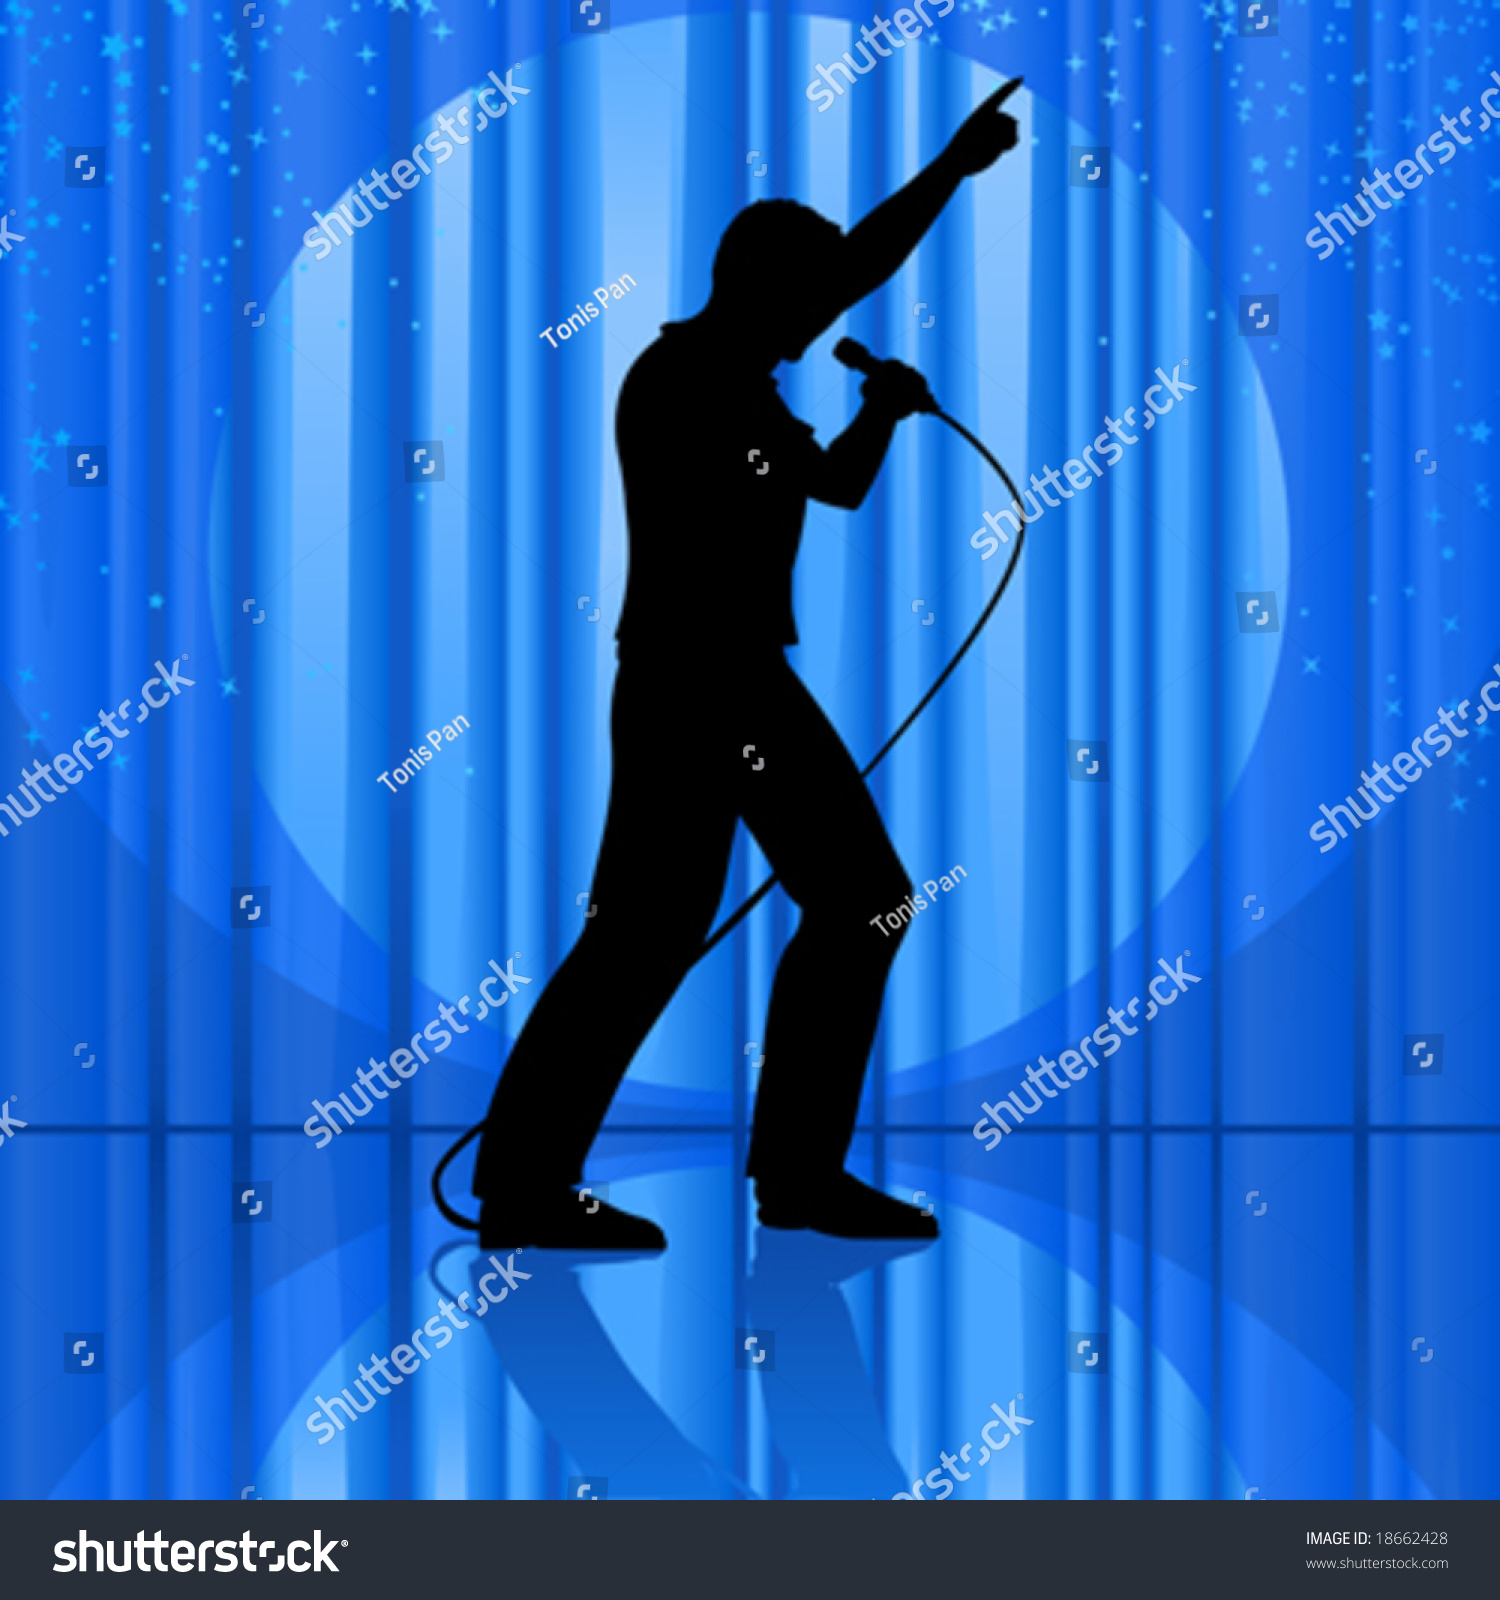 Vector Clip Art Illustration Silhouette Singer Stock ...